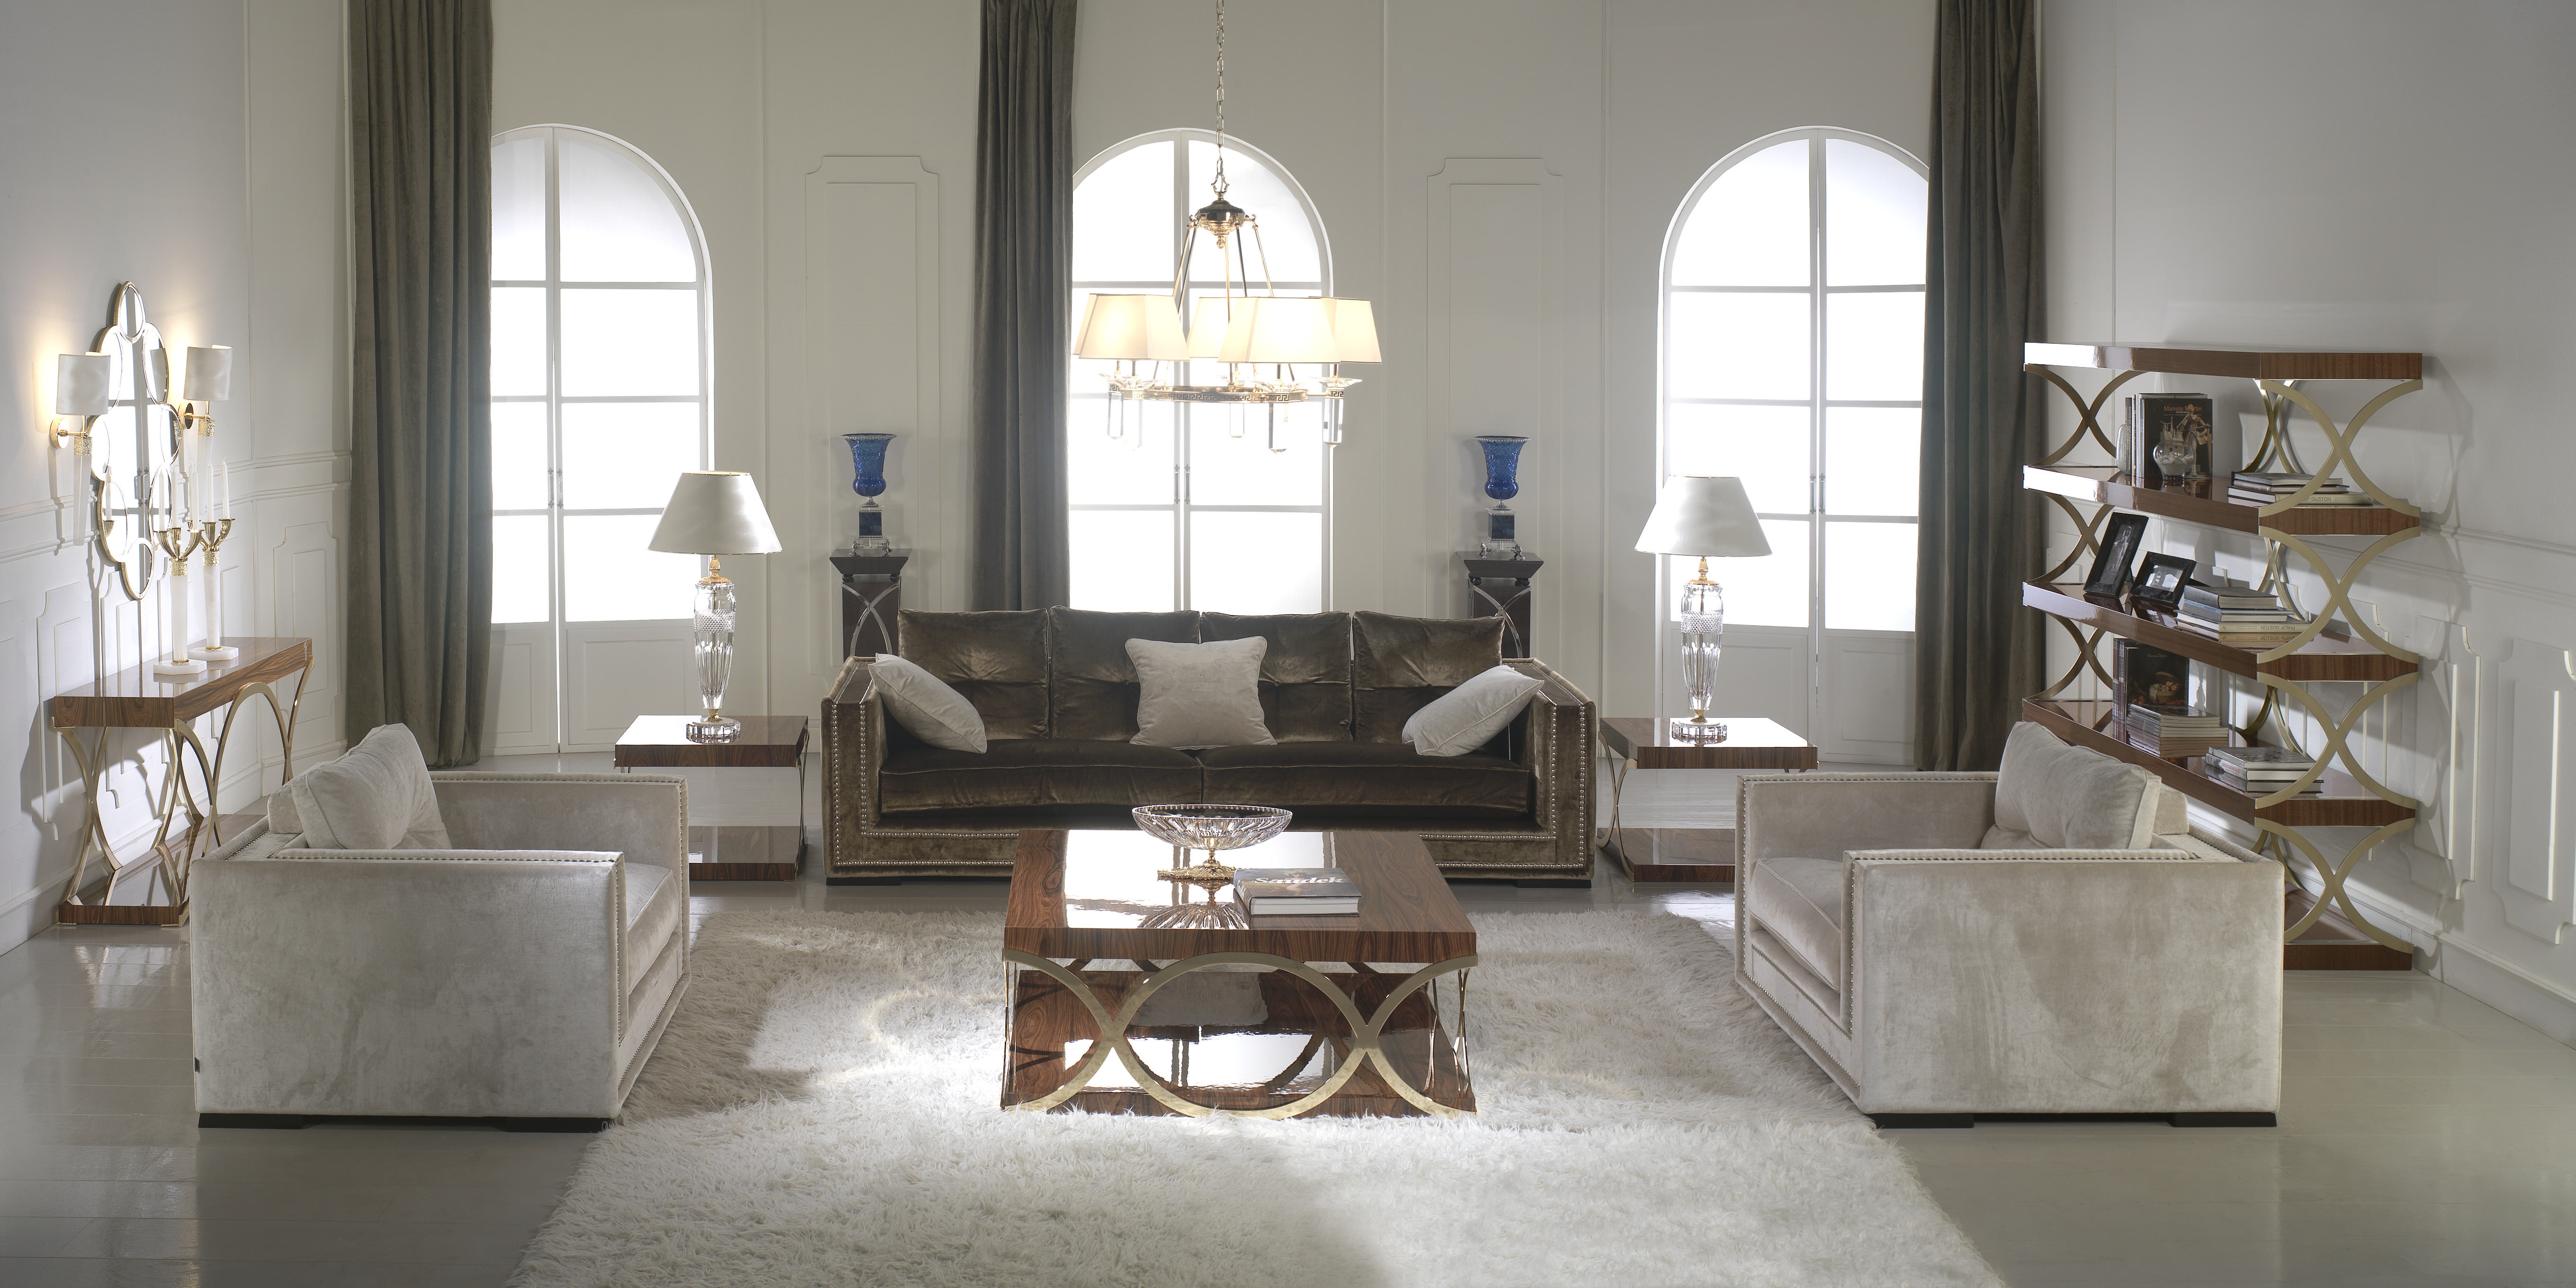 Classic Furniture From Spain # Muebles Requejo